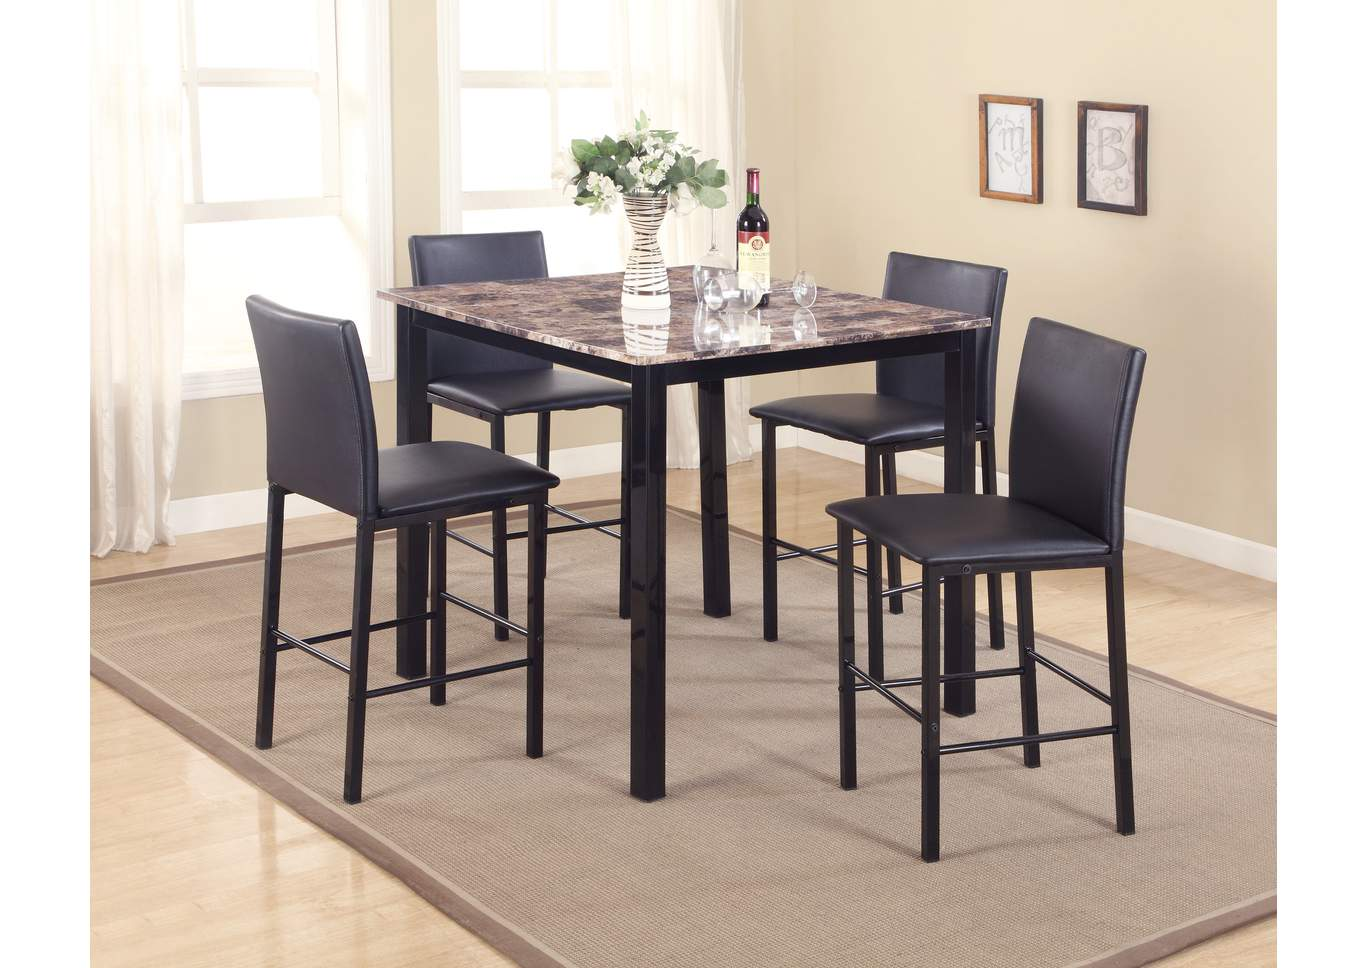 quality furniture wa aiden counter height dining room table w 4 counter height chairs. Black Bedroom Furniture Sets. Home Design Ideas